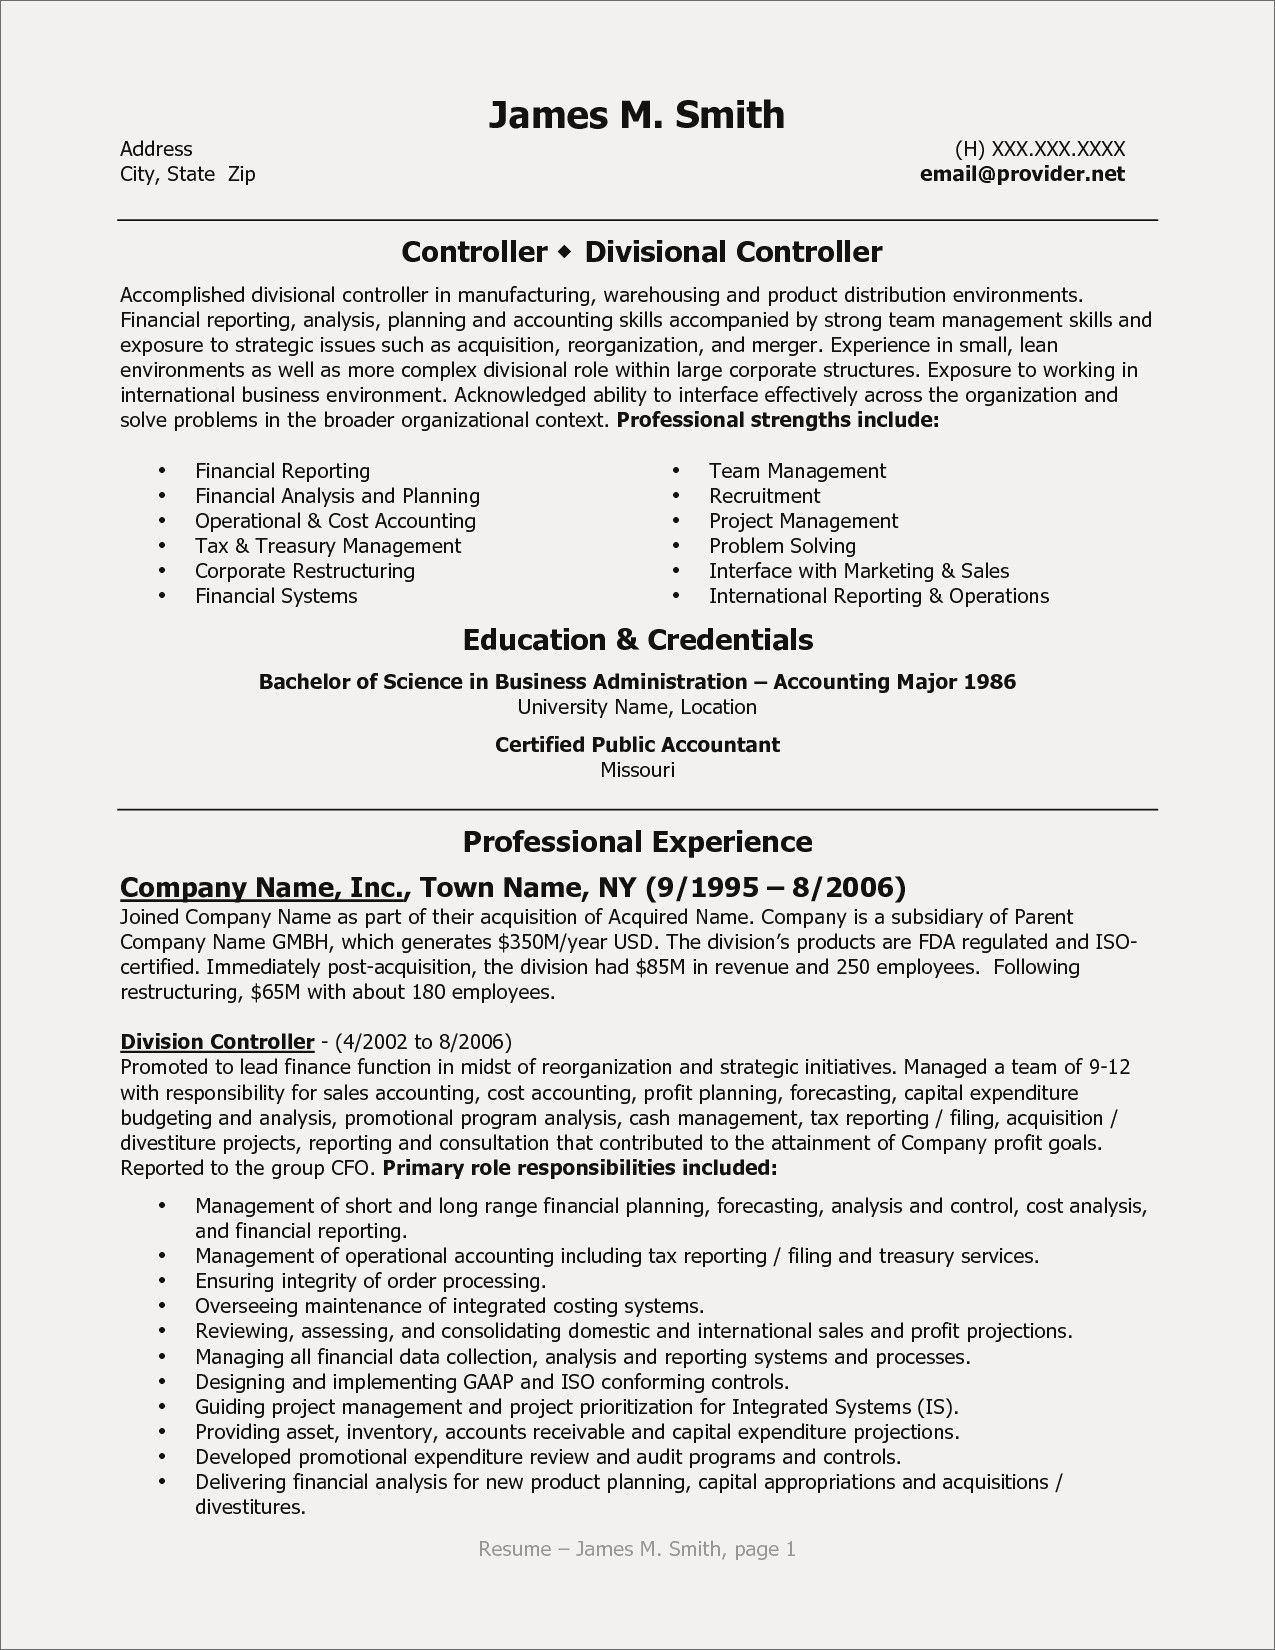 71 beautiful photos of resume examples for accounting managers